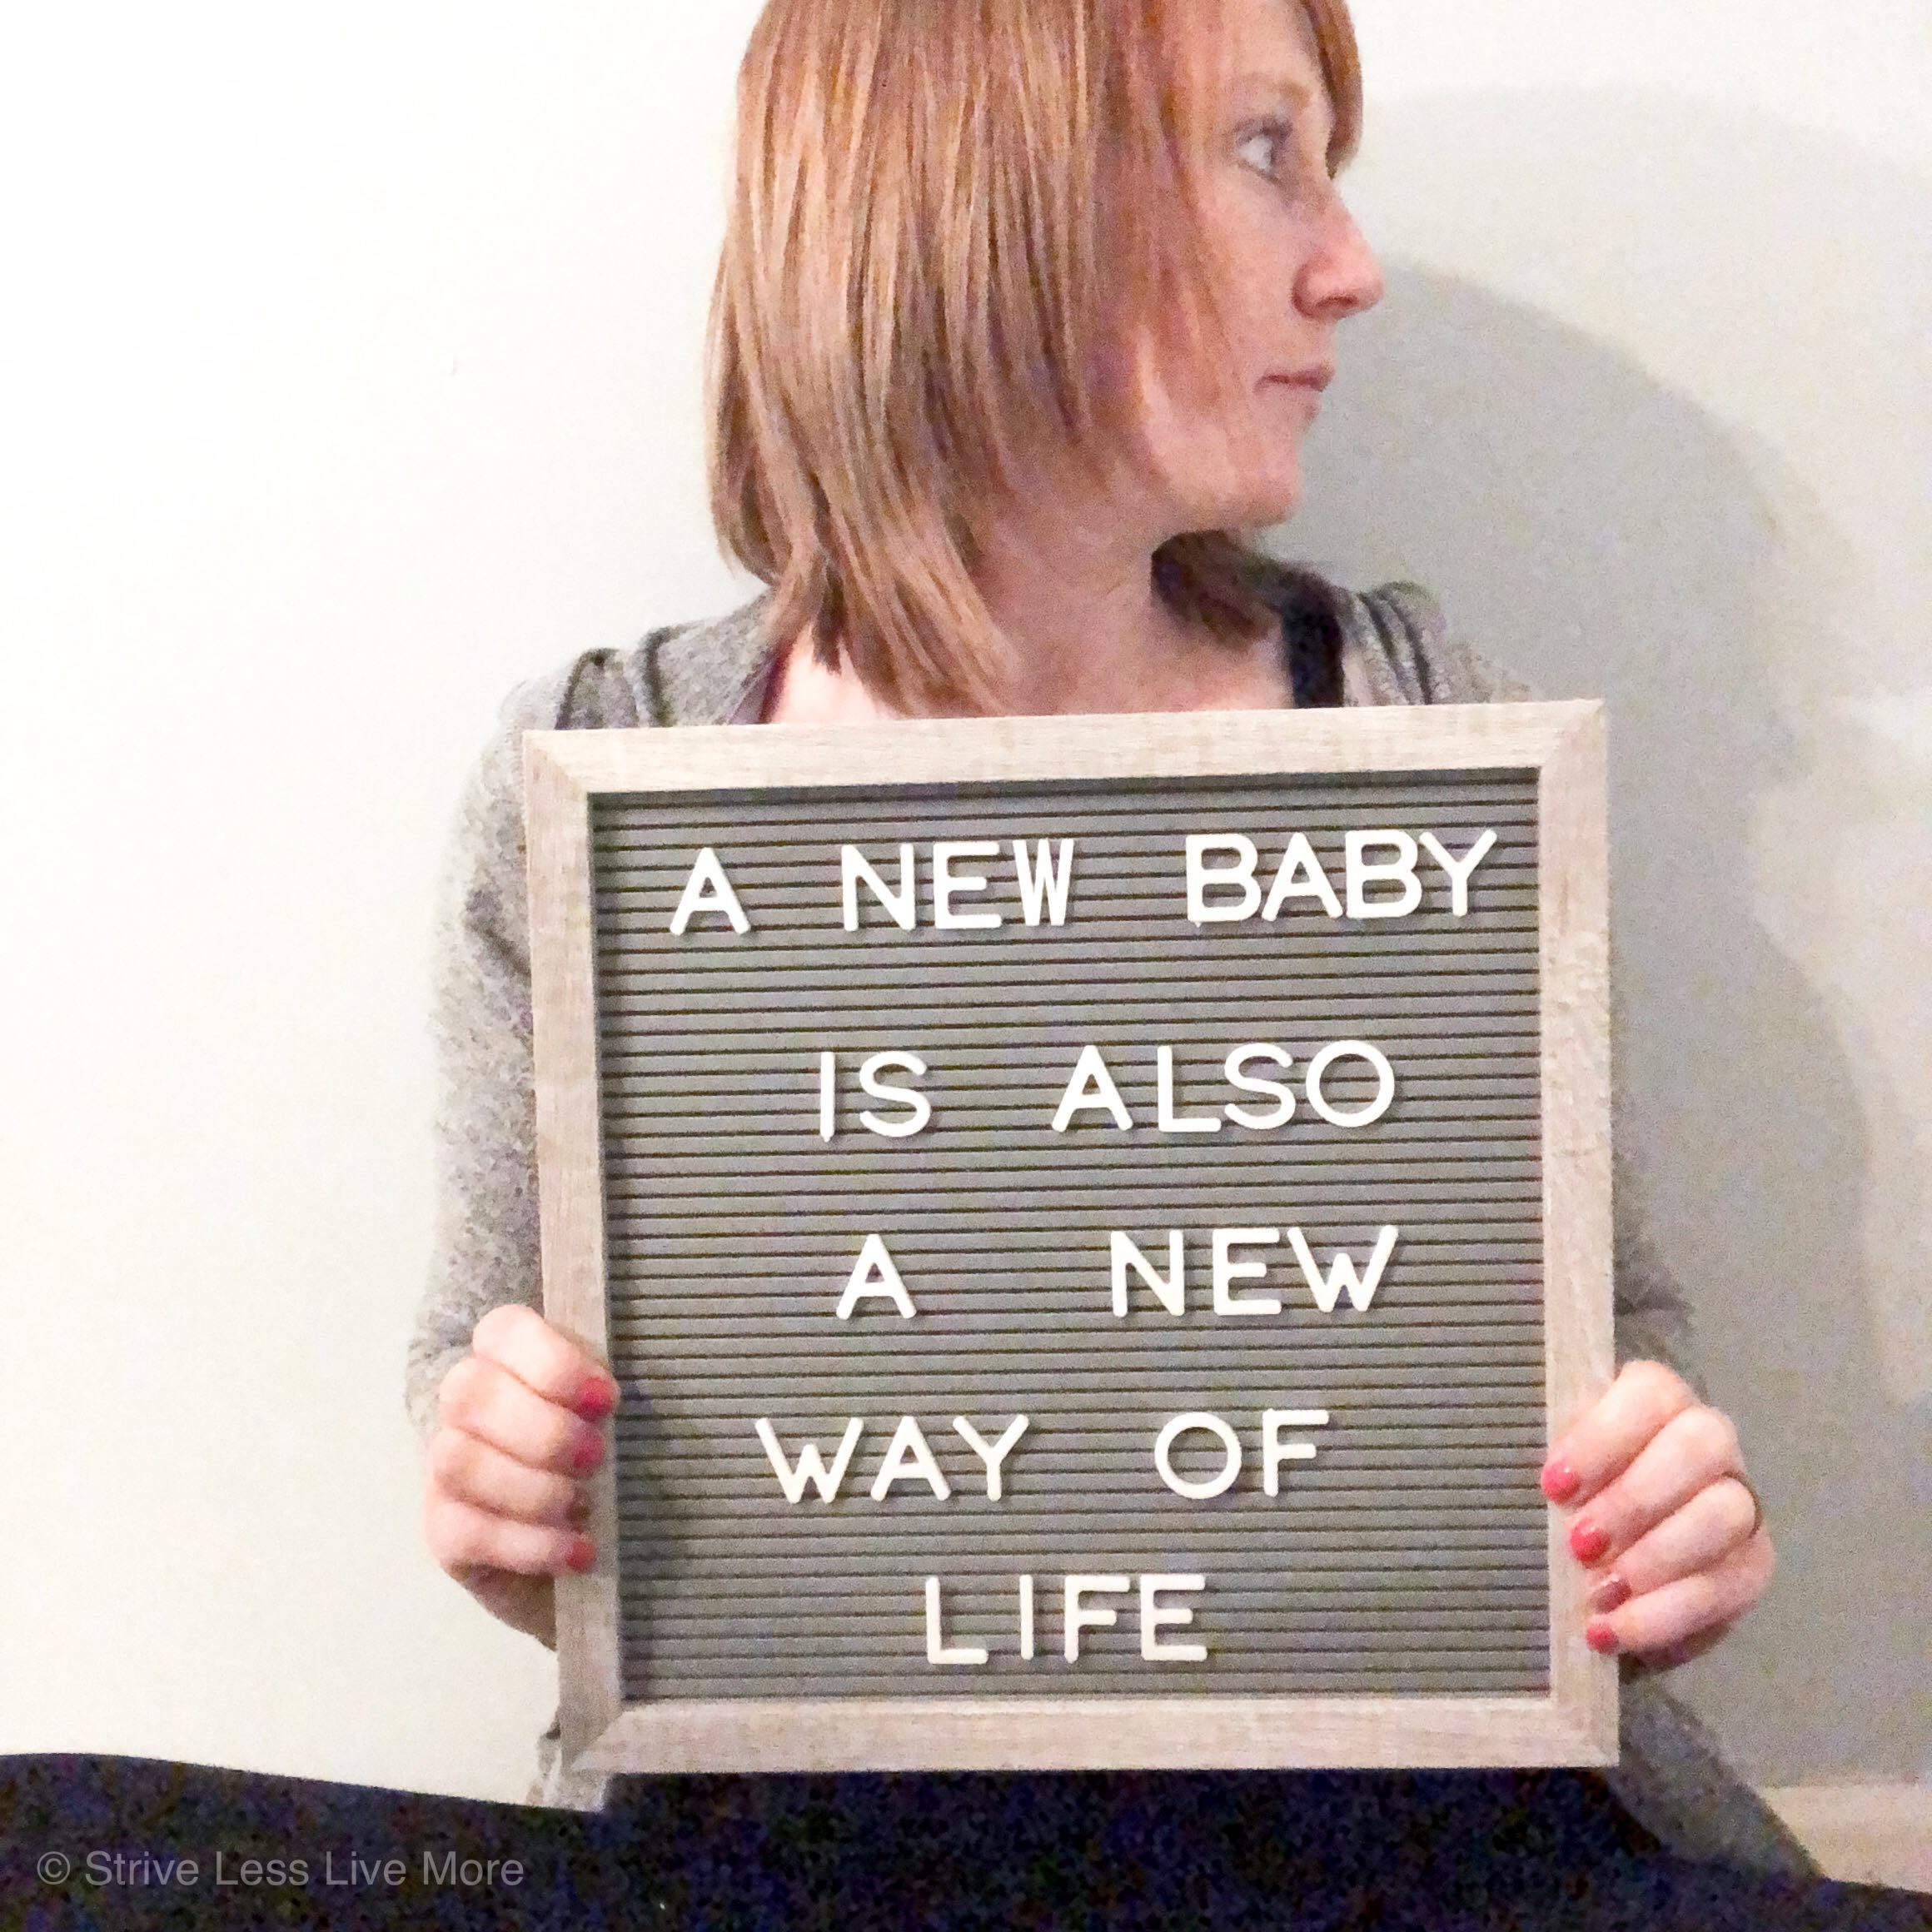 new baby is a new way of life